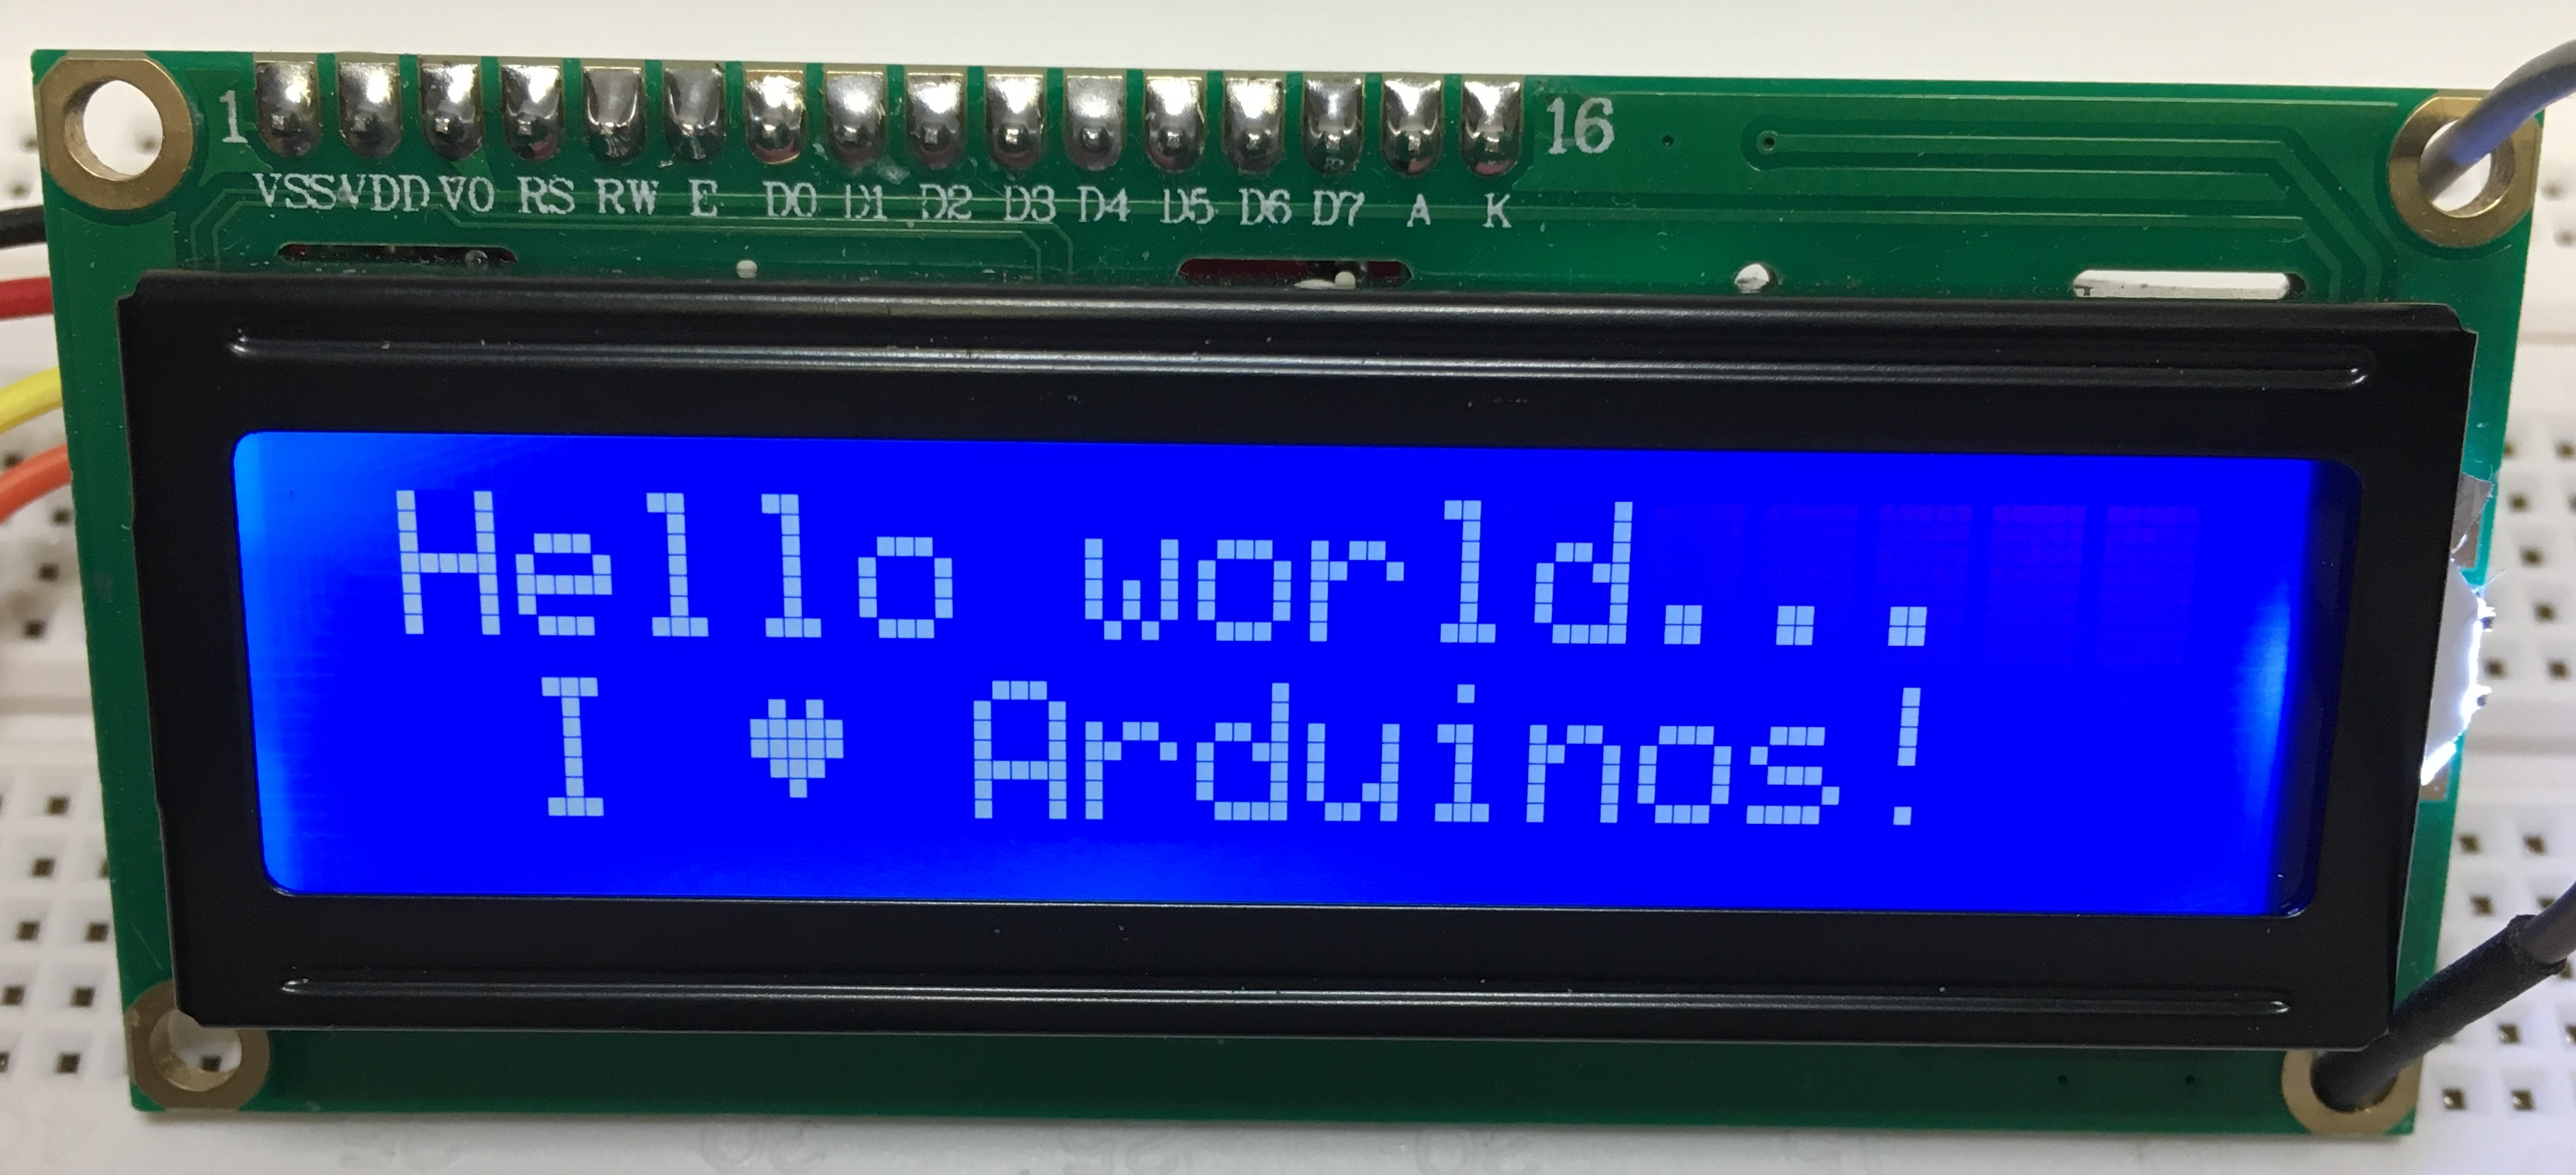 SKETCHES: LCD Character Displays